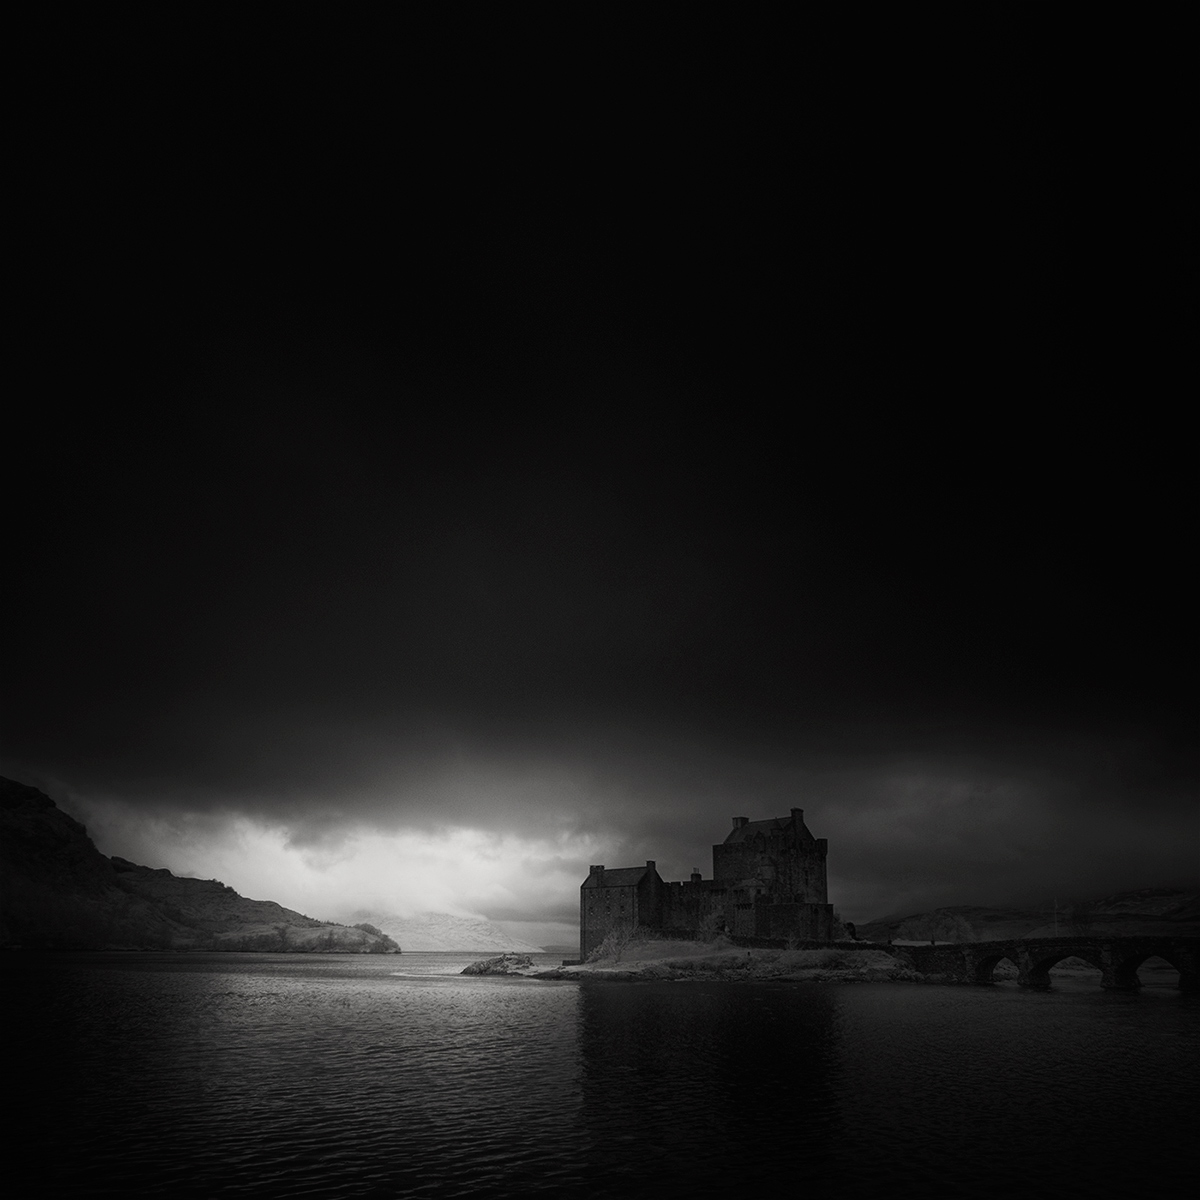 Castillos de Arena - Andy Lee - 2